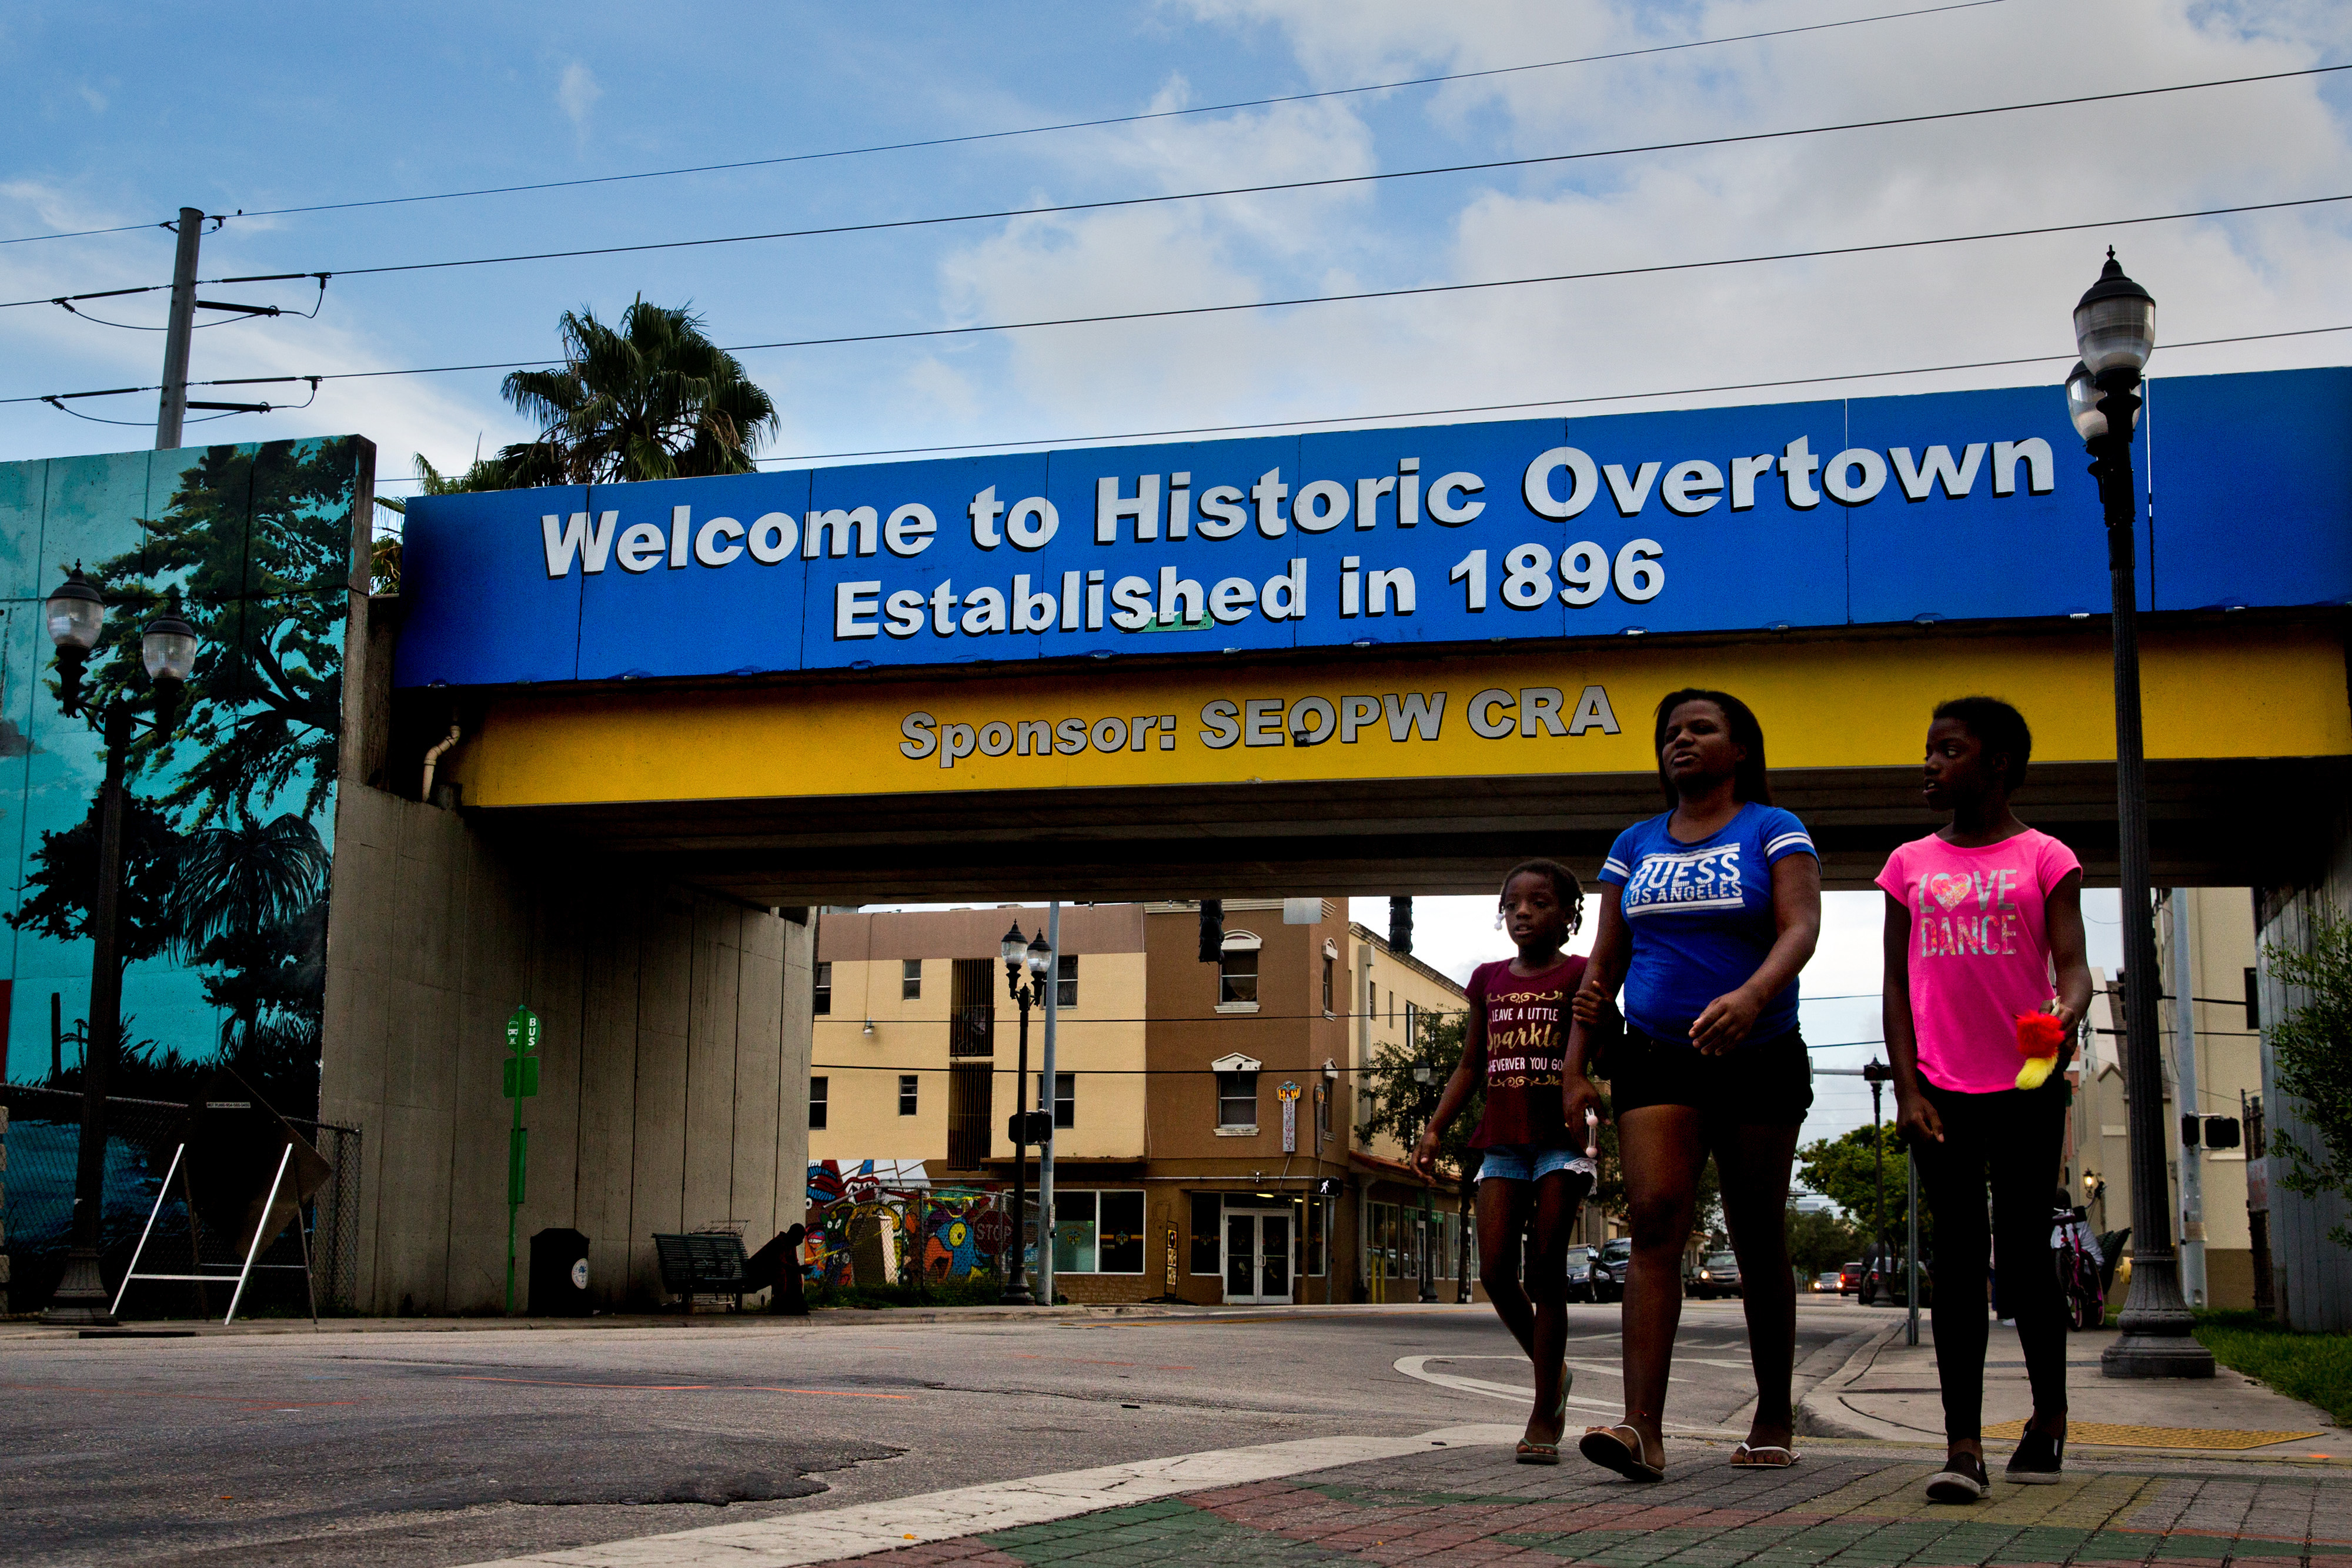 People walk through Miami's Overtown neighborhood on Wednesday. MUST CREDIT: Photo by Scott McIntyre for The Washington Post.